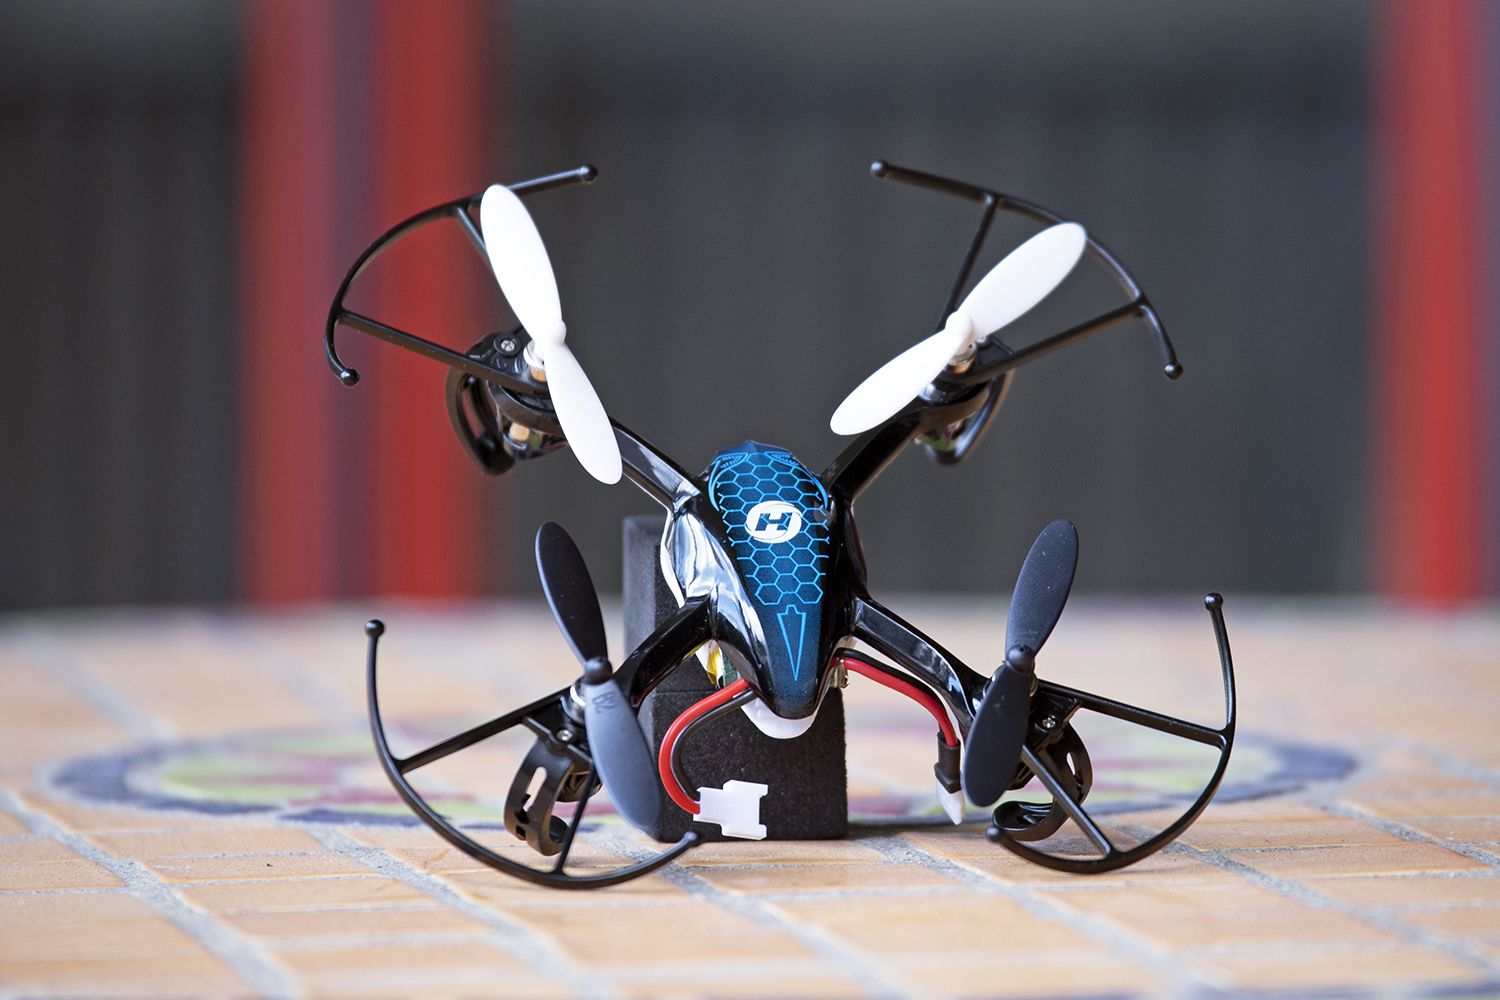 Holy Stone HS170 Predator Mini RC Helicopter Drone Review: A Drone on a Budget